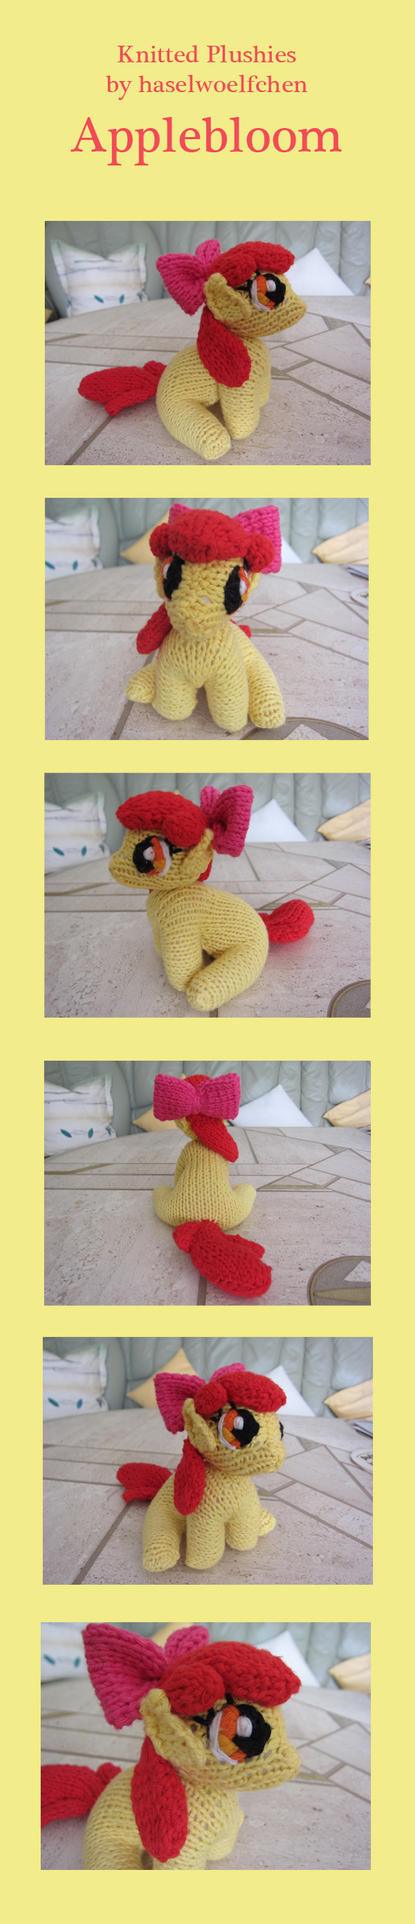 Knitted Plushies - Applebloom by haselwoelfchen